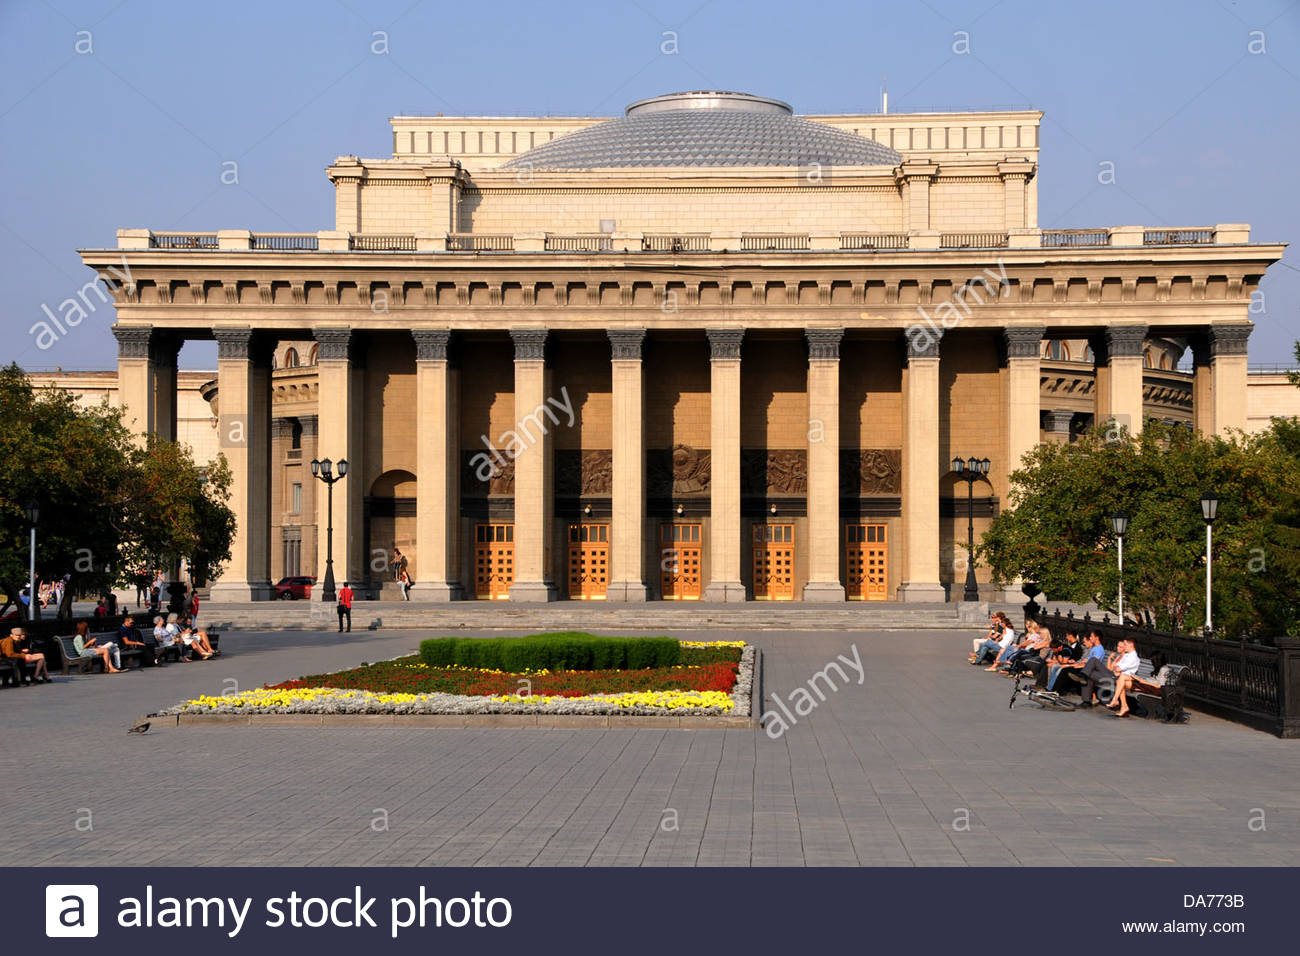 state academic theater of opera and ballet,Novosibirsk,Siberia,Russia - Stock Image